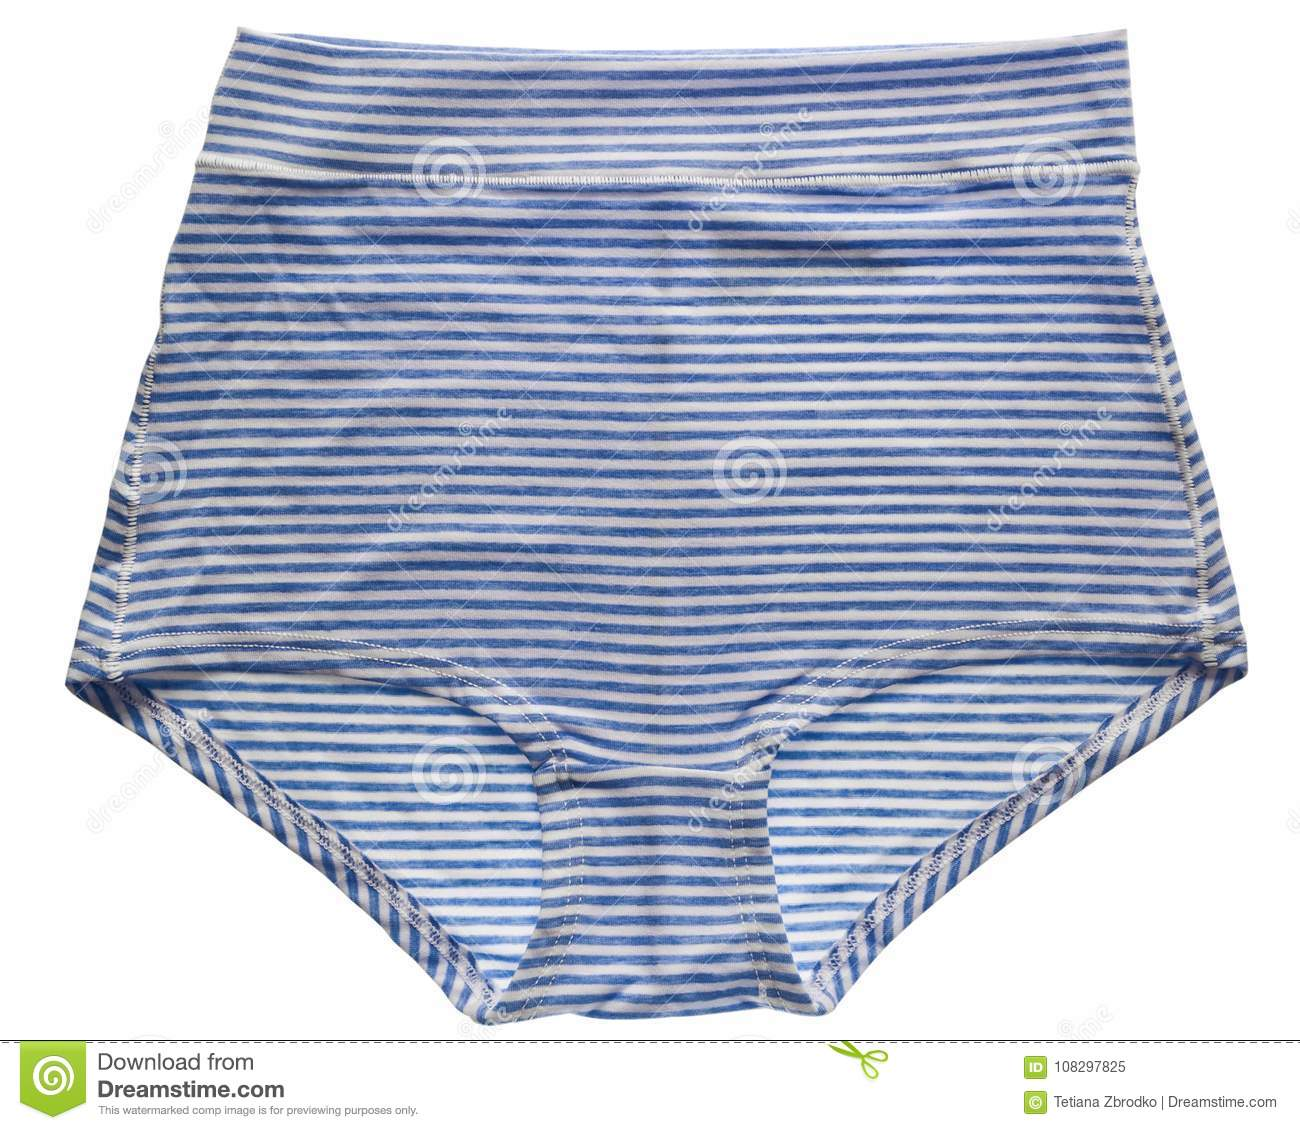 3966ae3a3ef3 Women`s blue stripe cotton panties isolated on white background. Cotton  underwear.